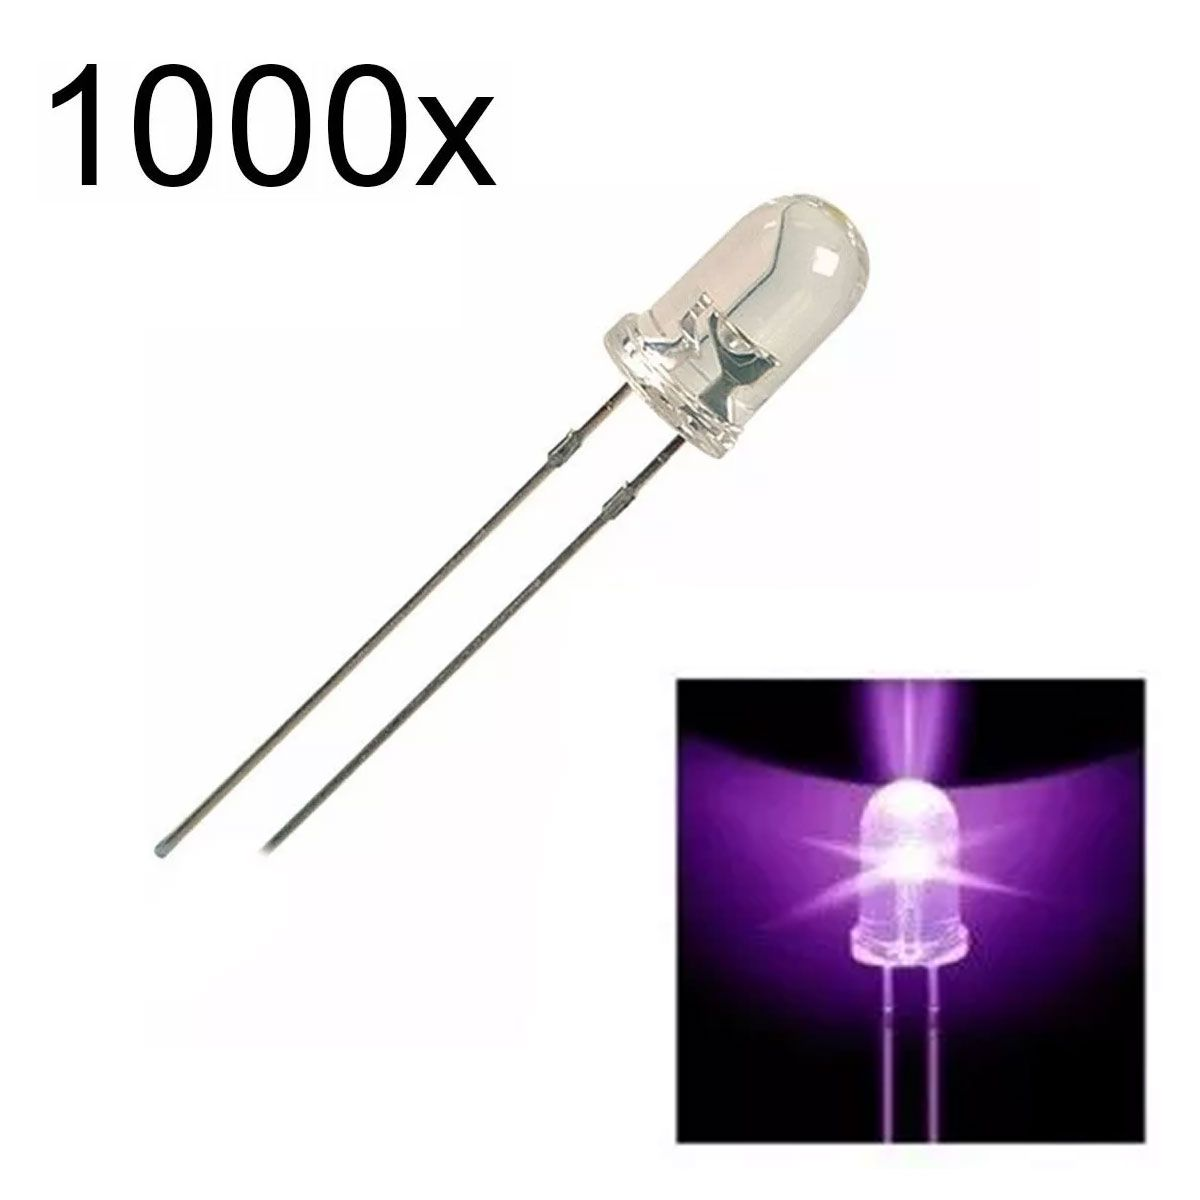 1000x Led Roxo Alto Brilho 5mm